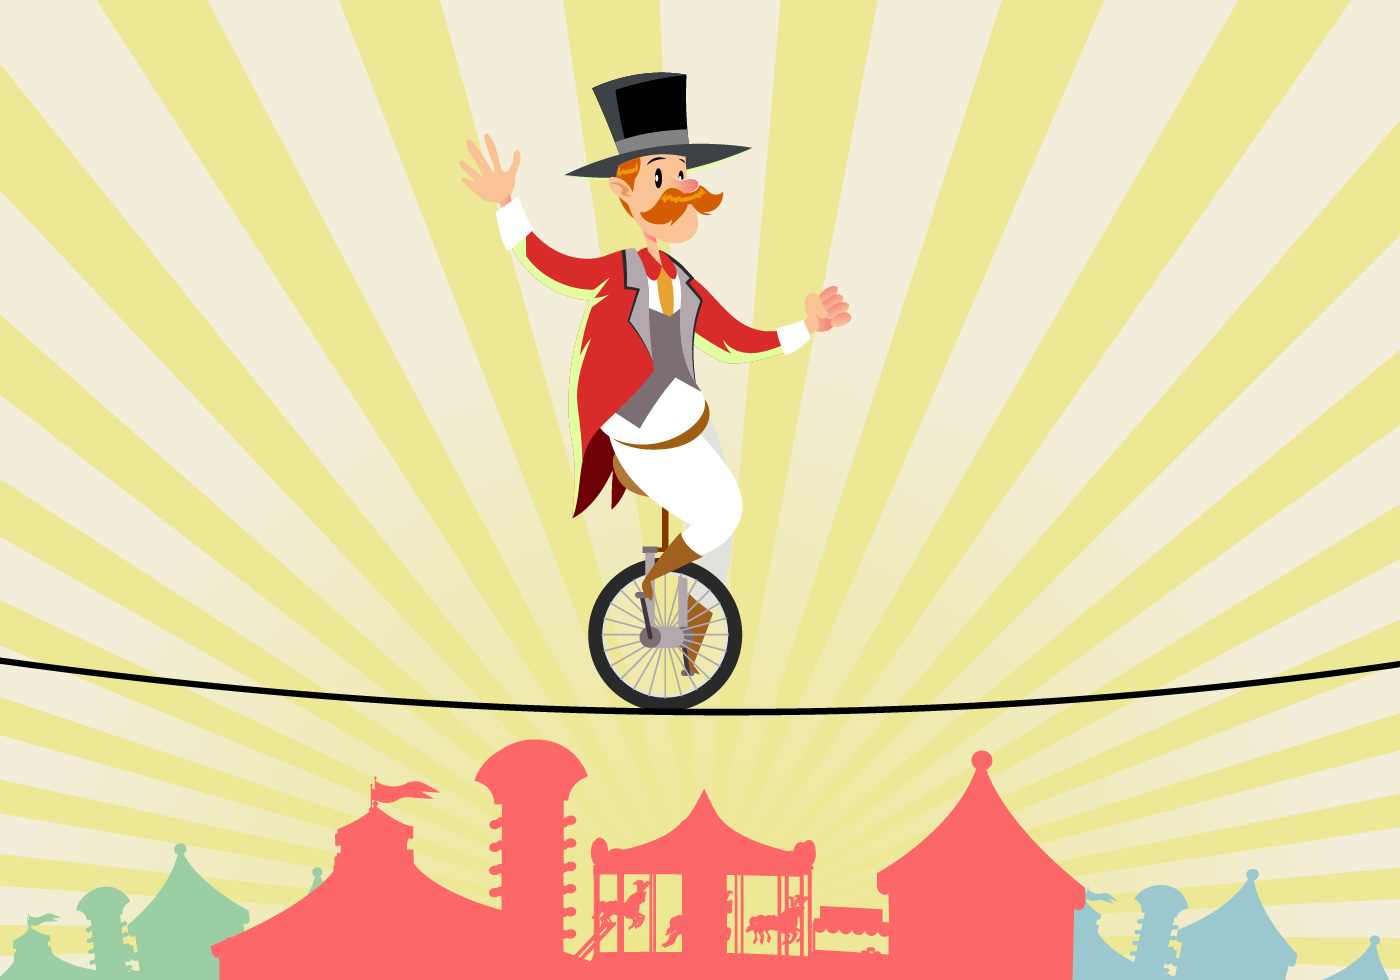 Circus Man On Tightrope Vector - Download Free Vector Art, Stock ...